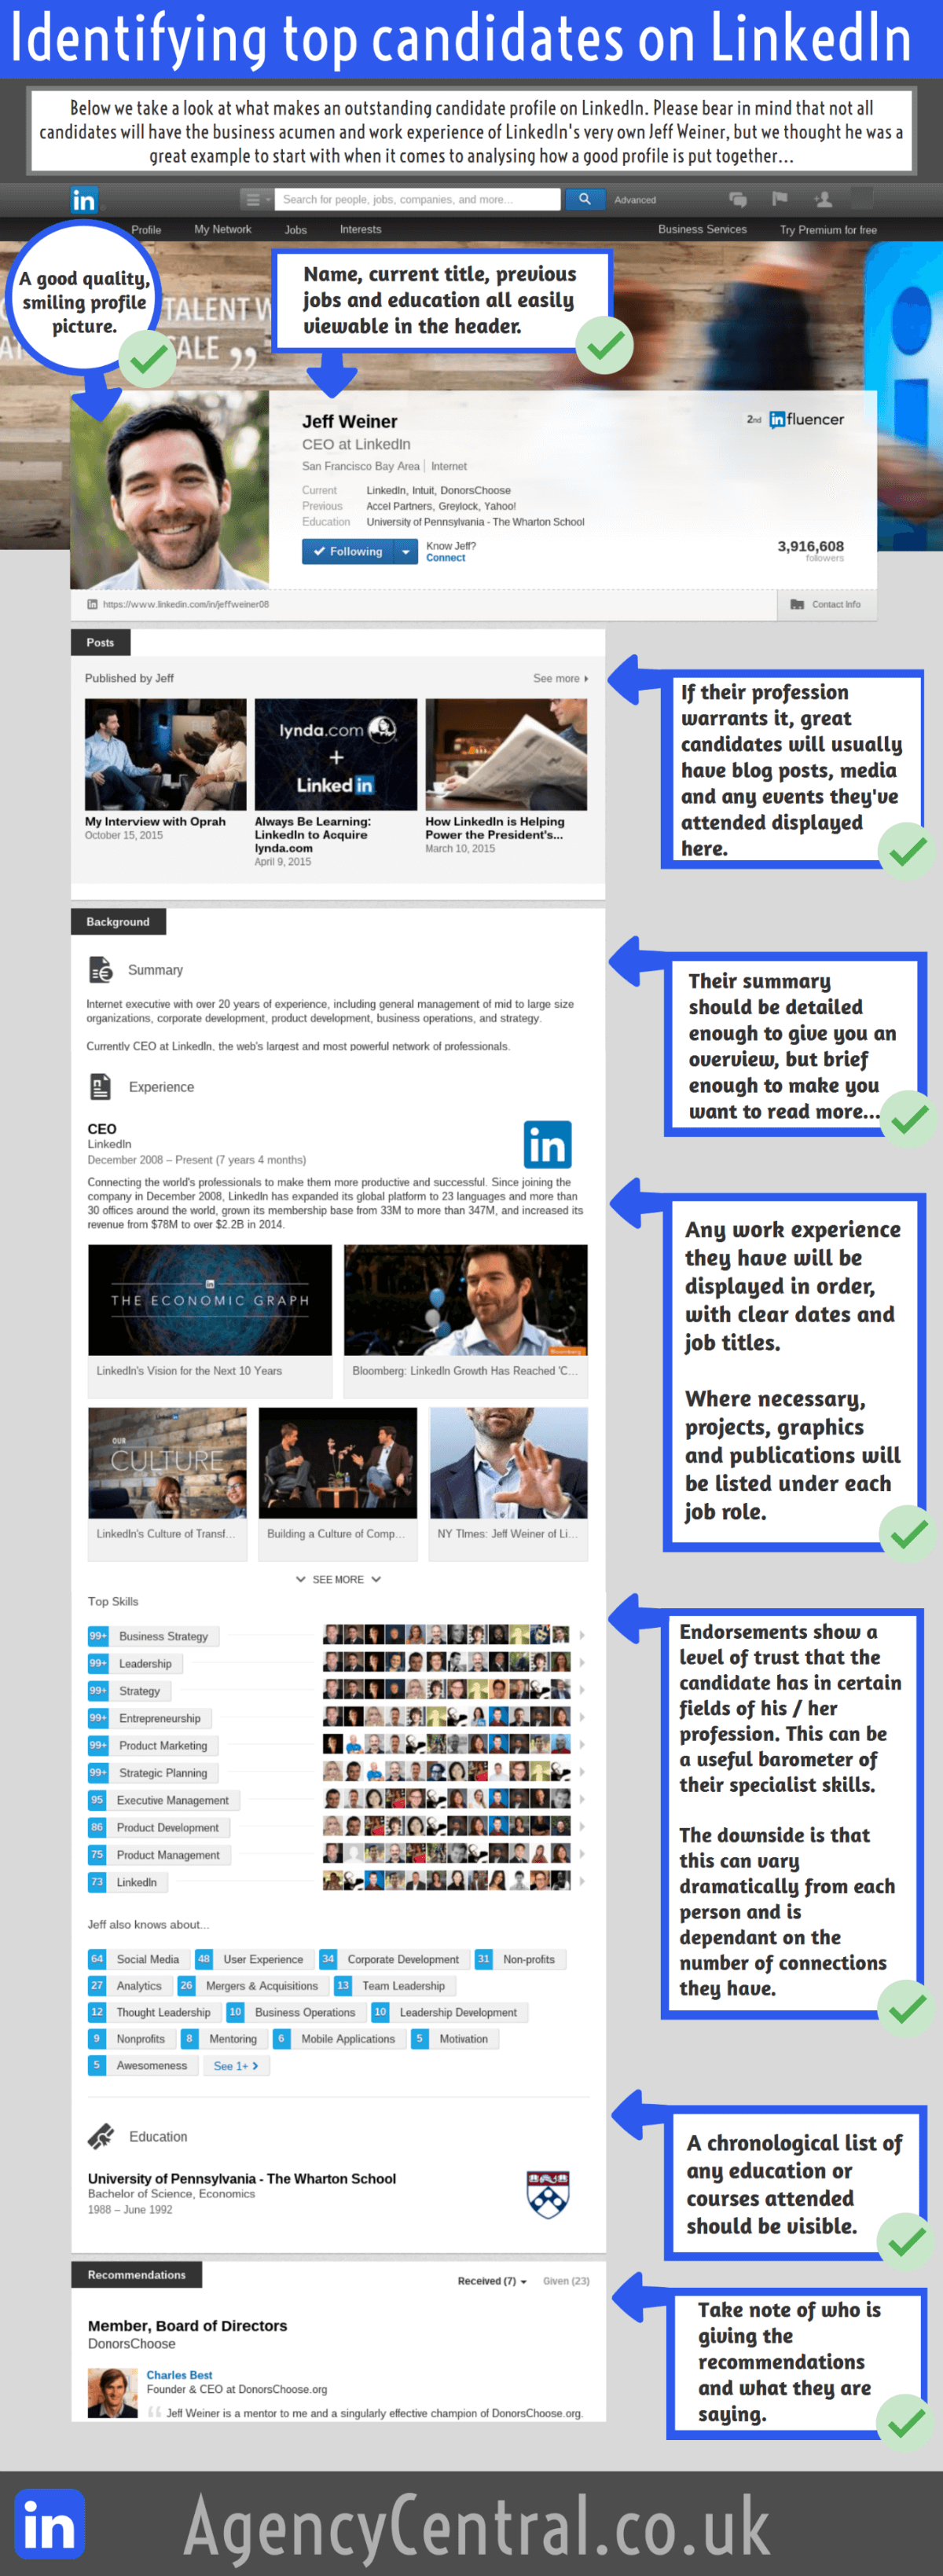 recruiters how to the best candidates on linkedin candidate linkedin profiles what to look for